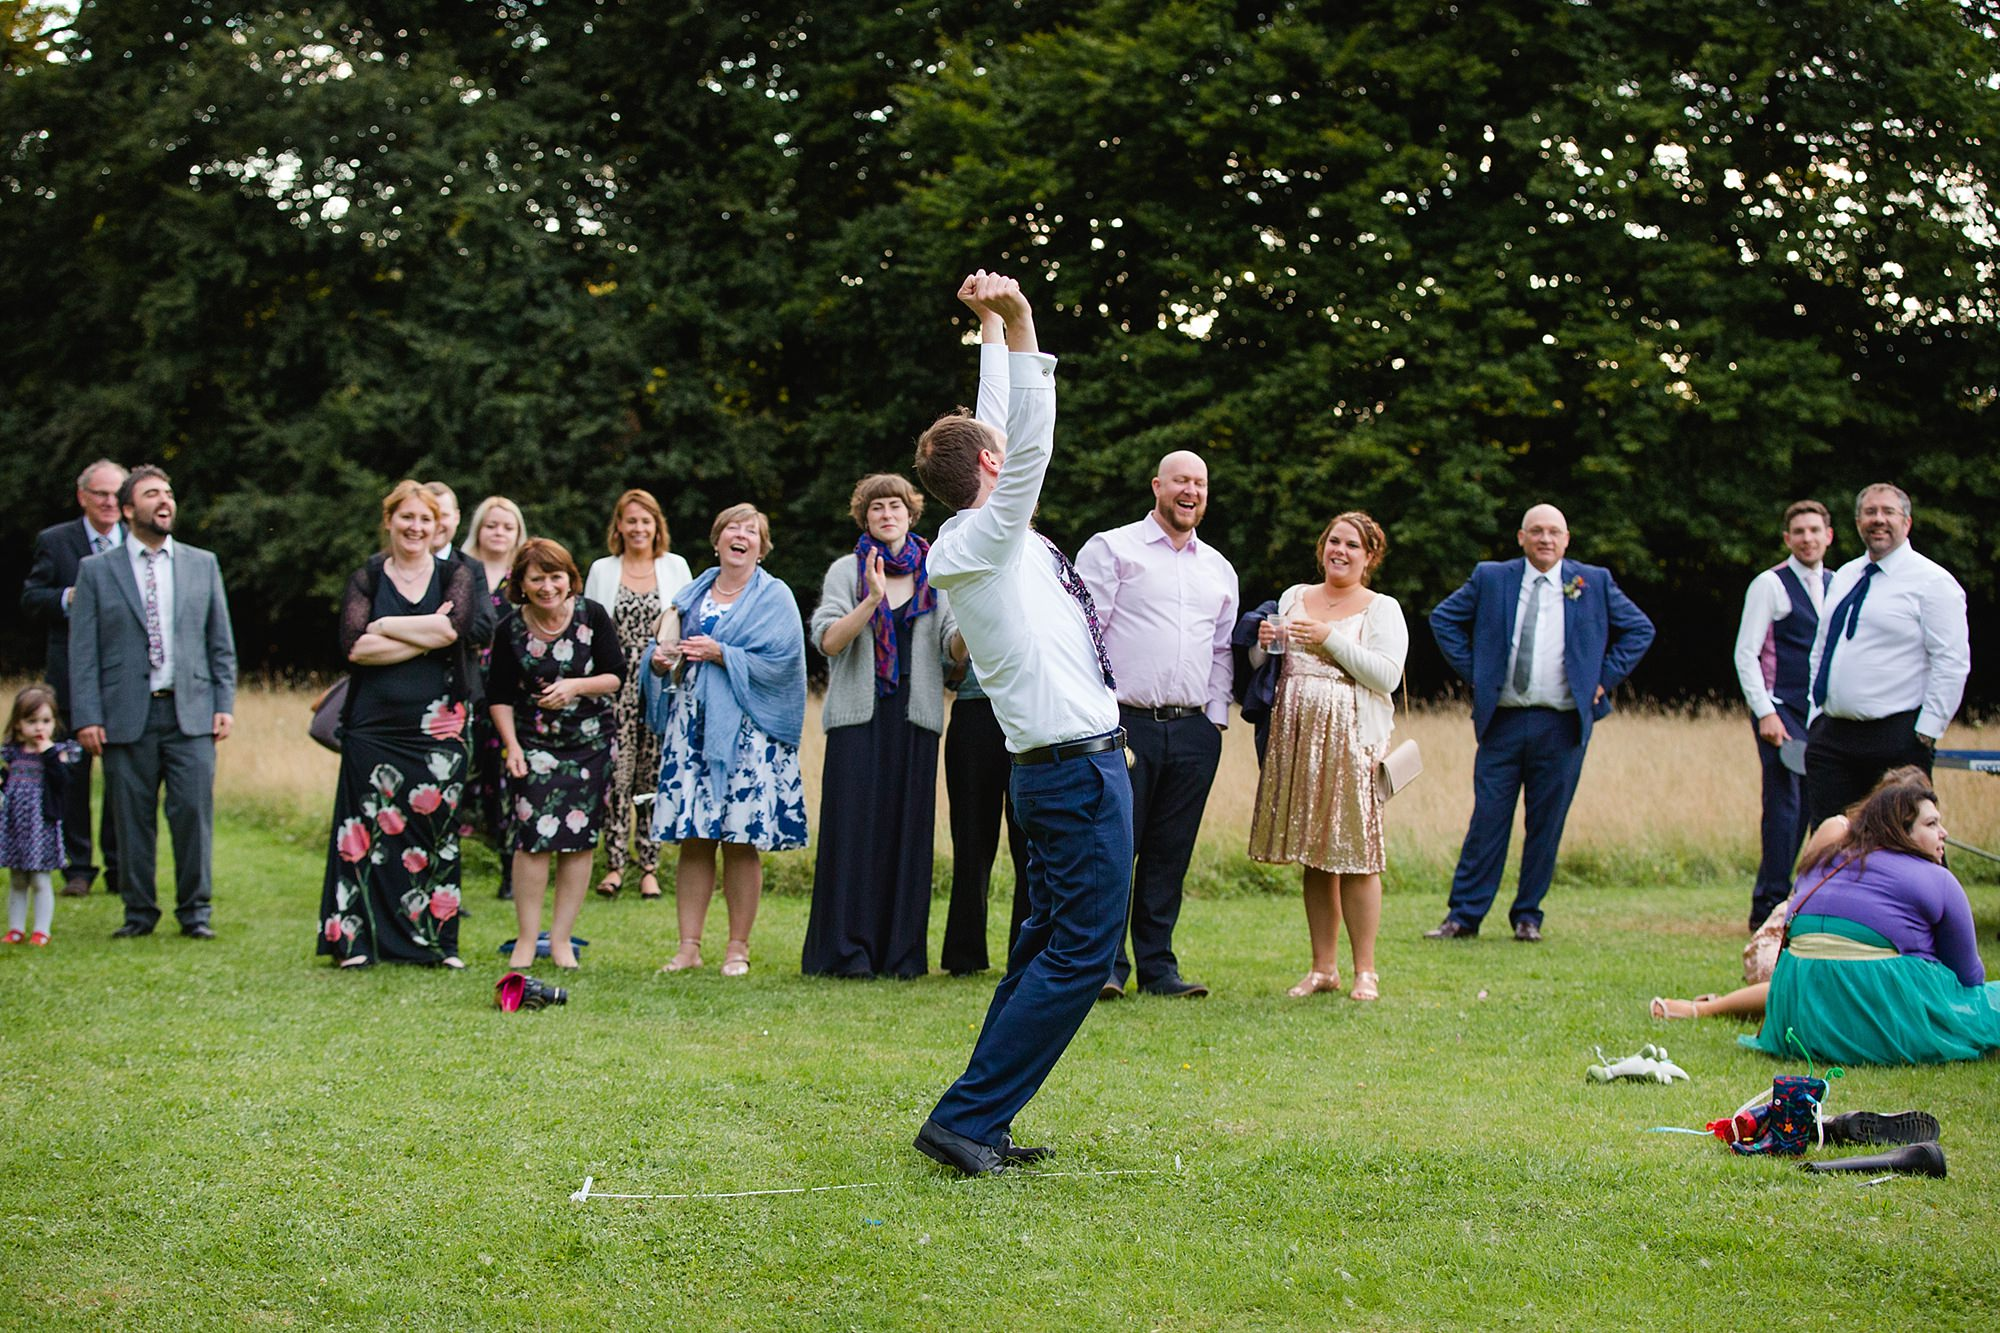 Woodland Weddings Tring groom celebrates